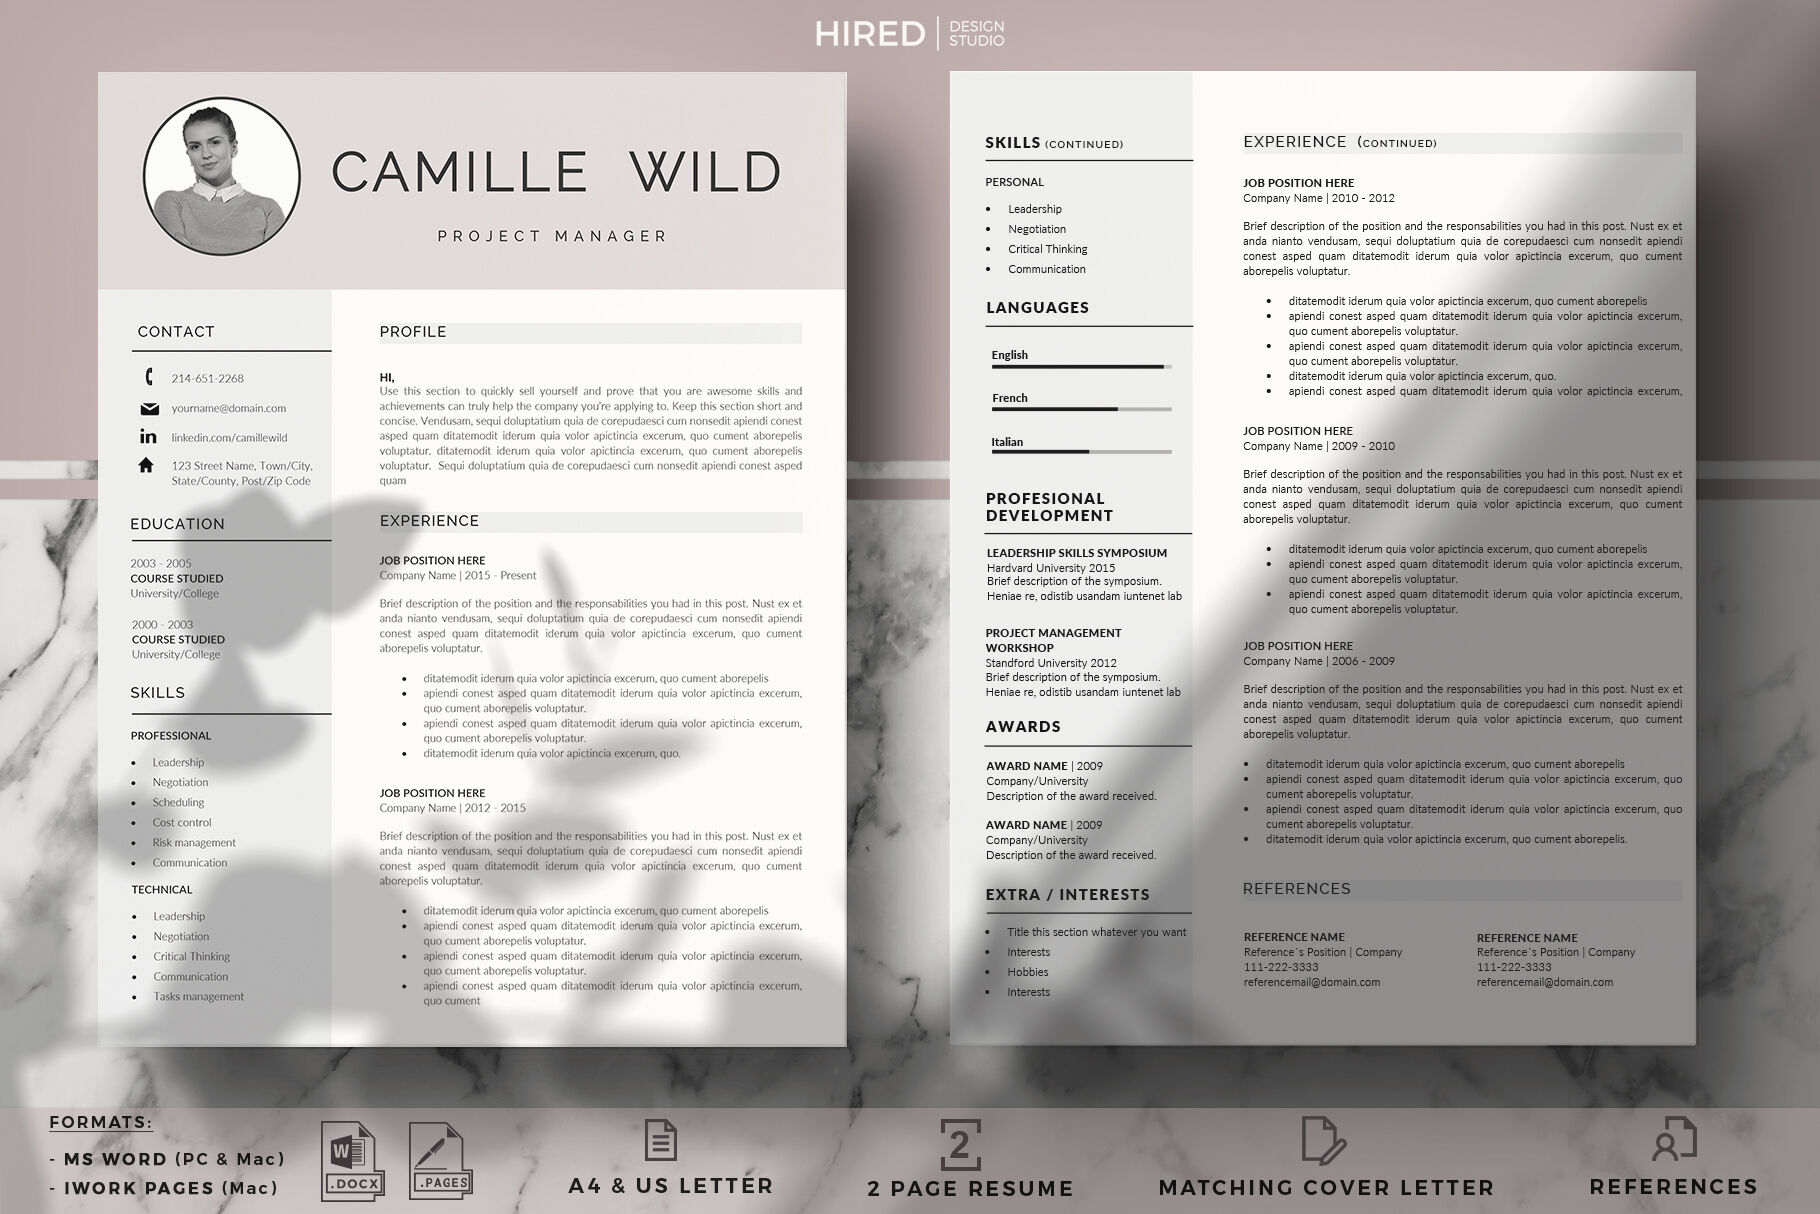 Professional Cv Template For Project Managers 1 2 Page Resume By Hiredds Thehungryjpeg Com